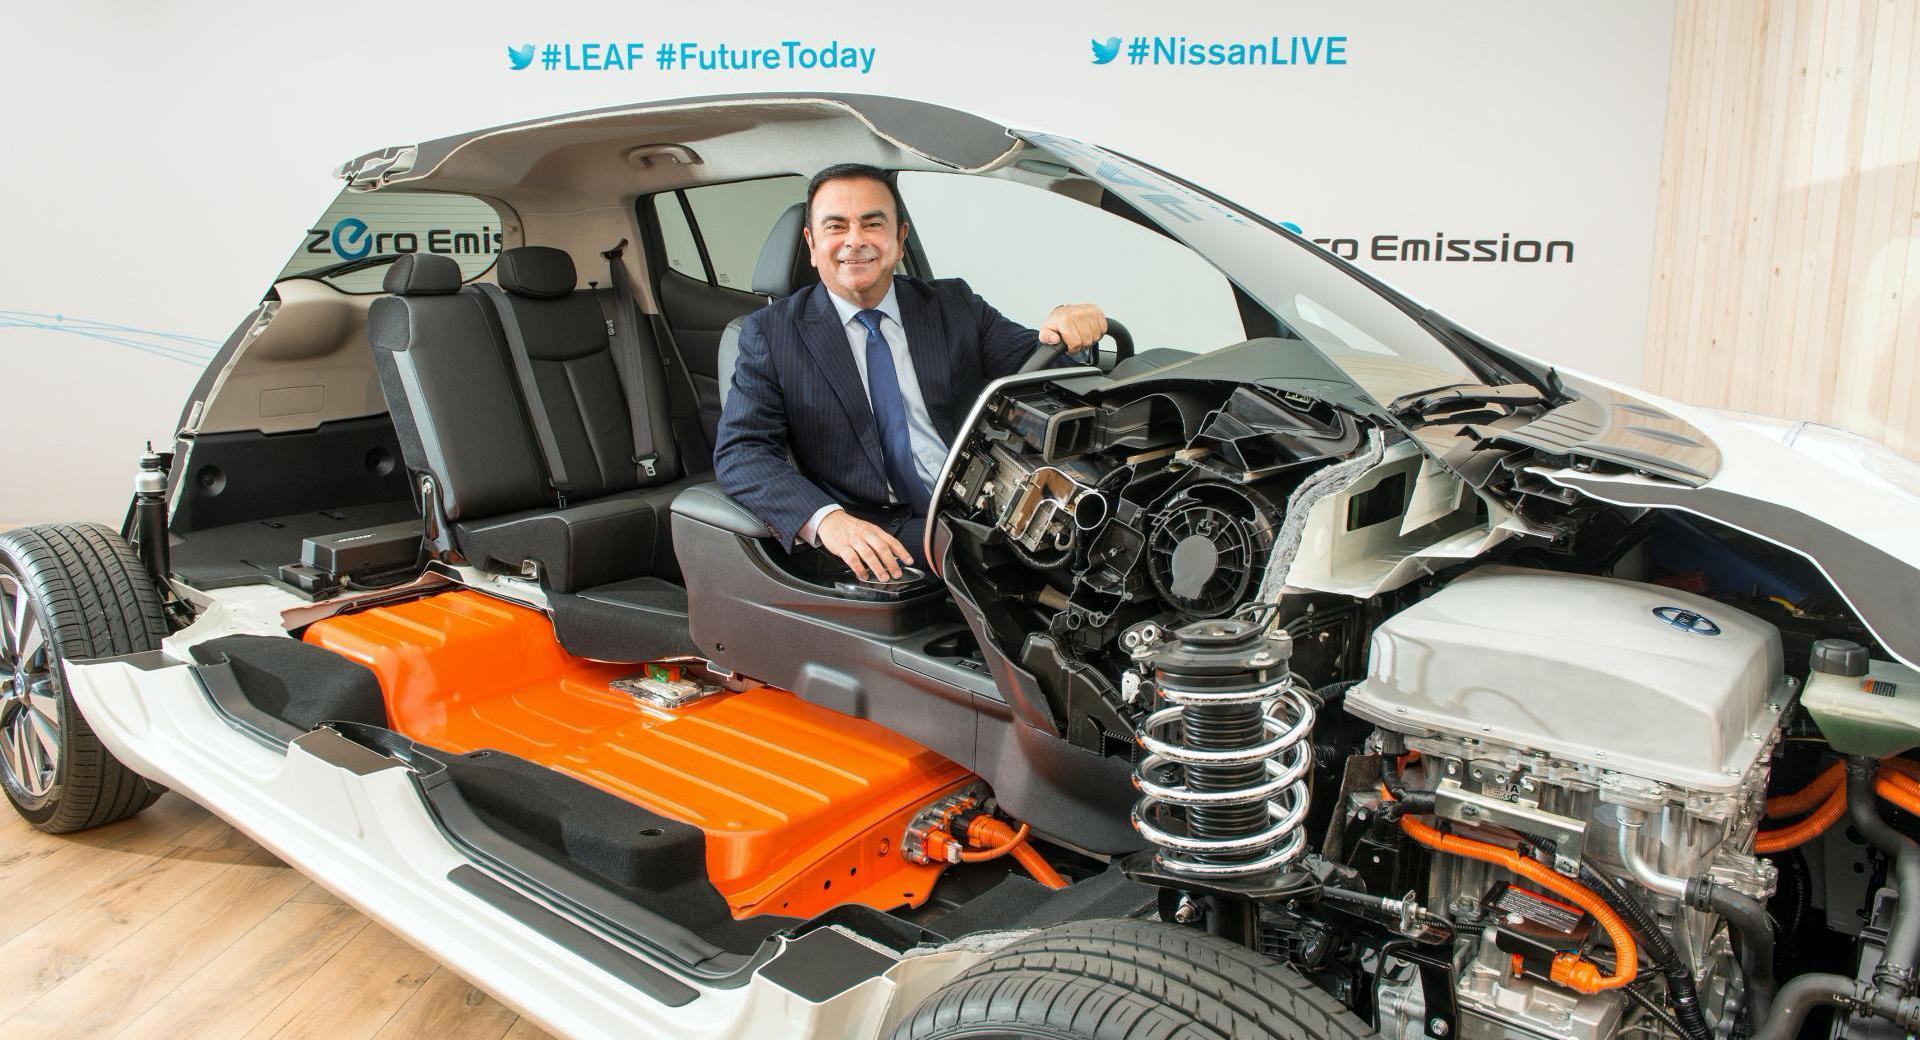 carlos-ghosn-and-nissan-leaf